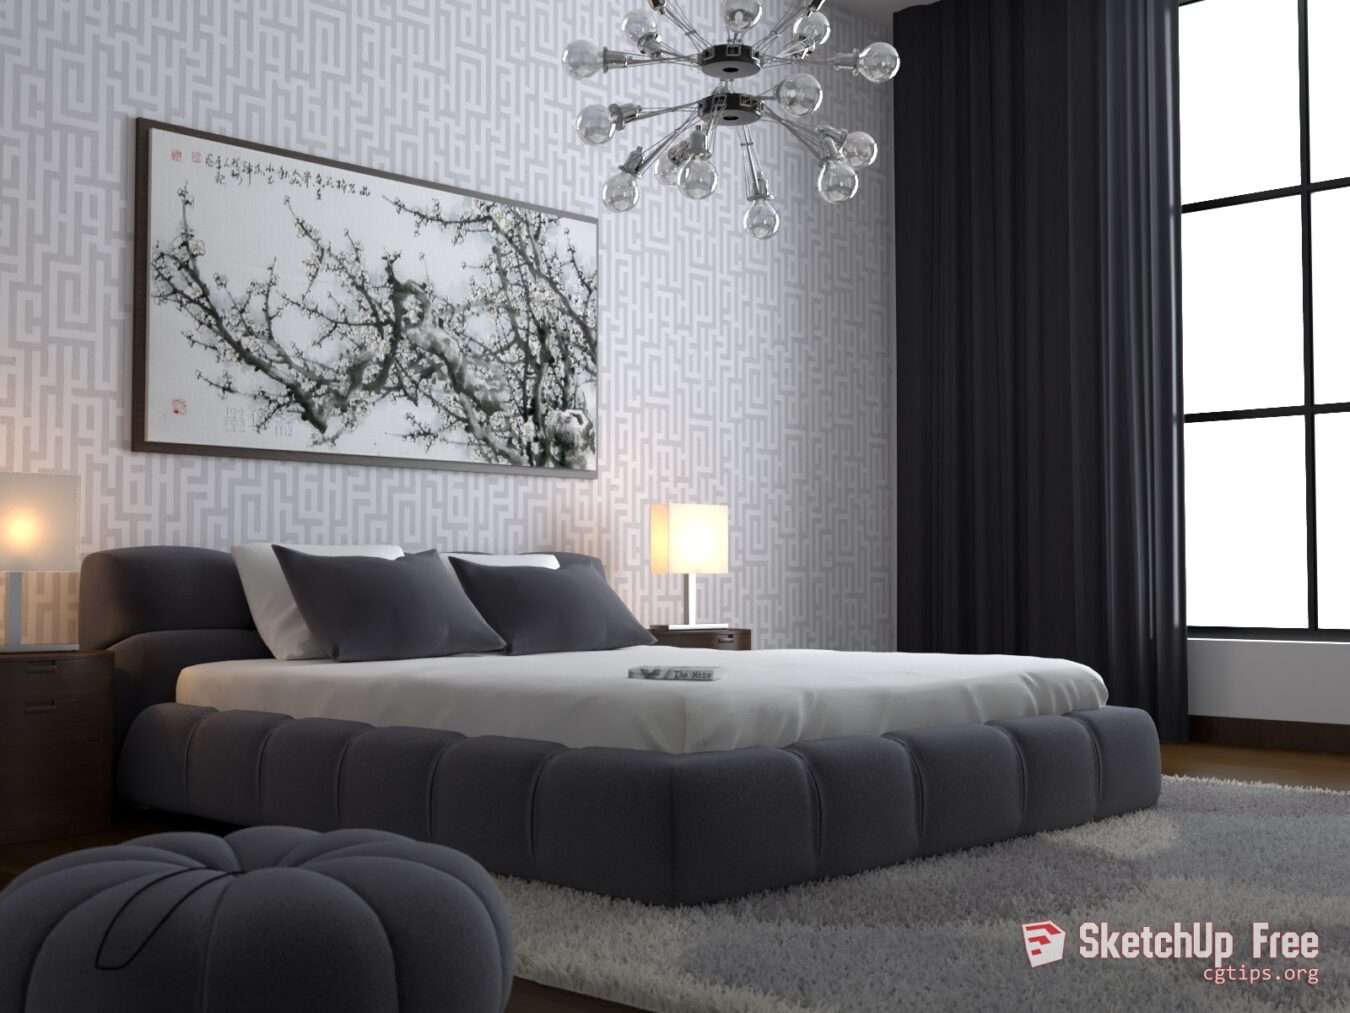 1635 Interior Bedroom Scene Sketchup Model Free Download